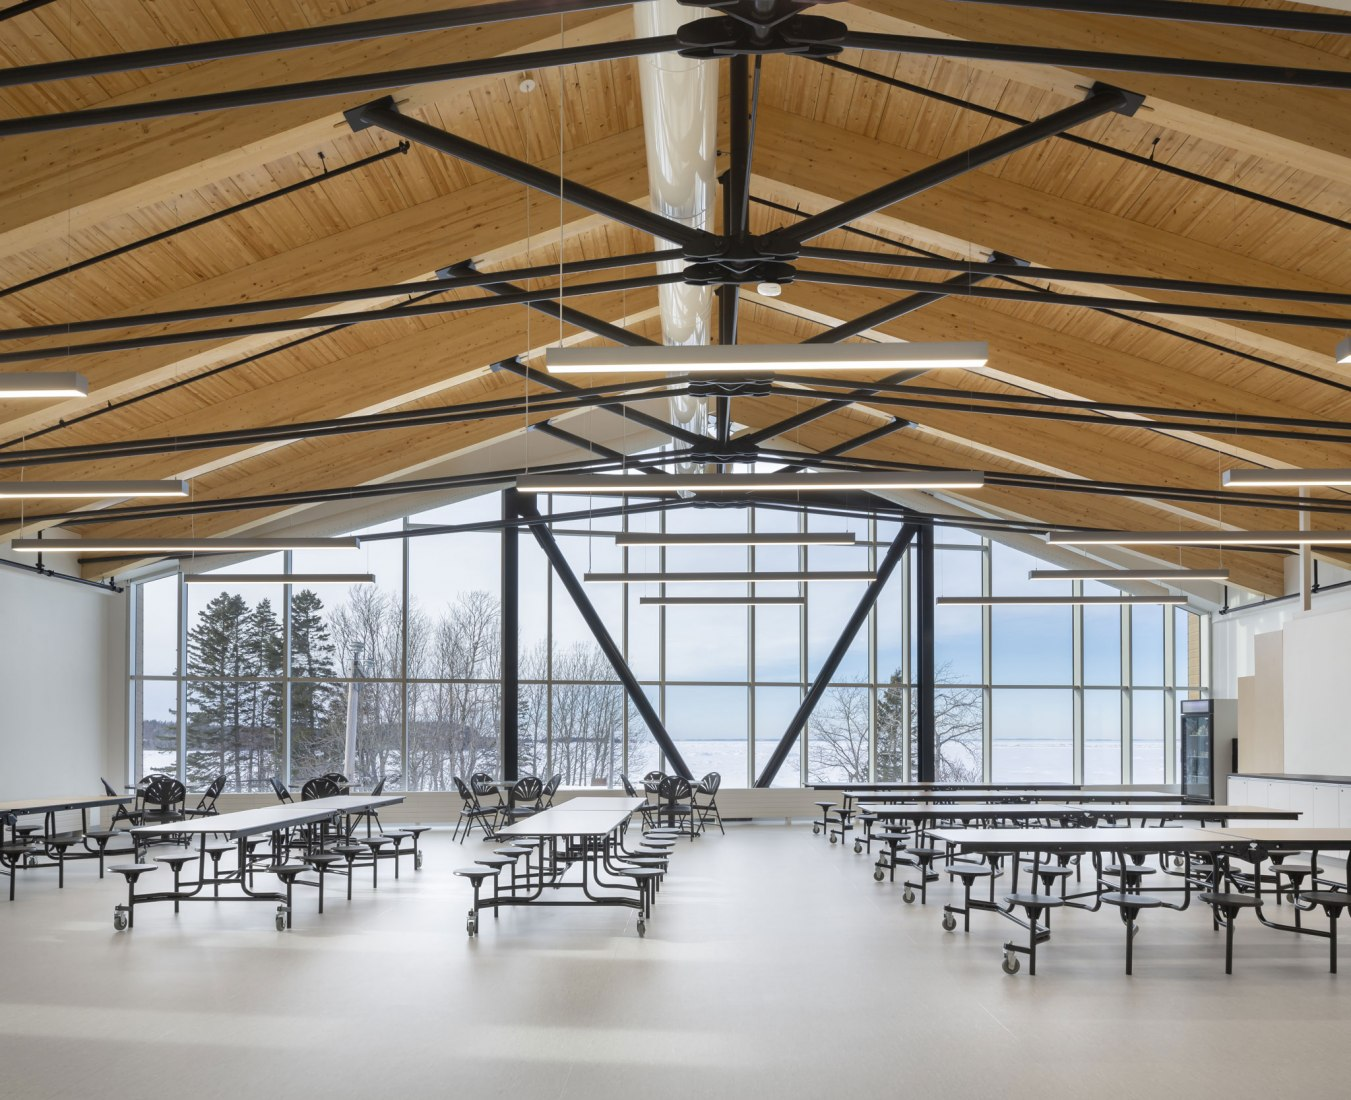 Metis Beach Intermediate School by PROULXSAVARD + CCM2 architects. Photograph by Stéphane Groleau.